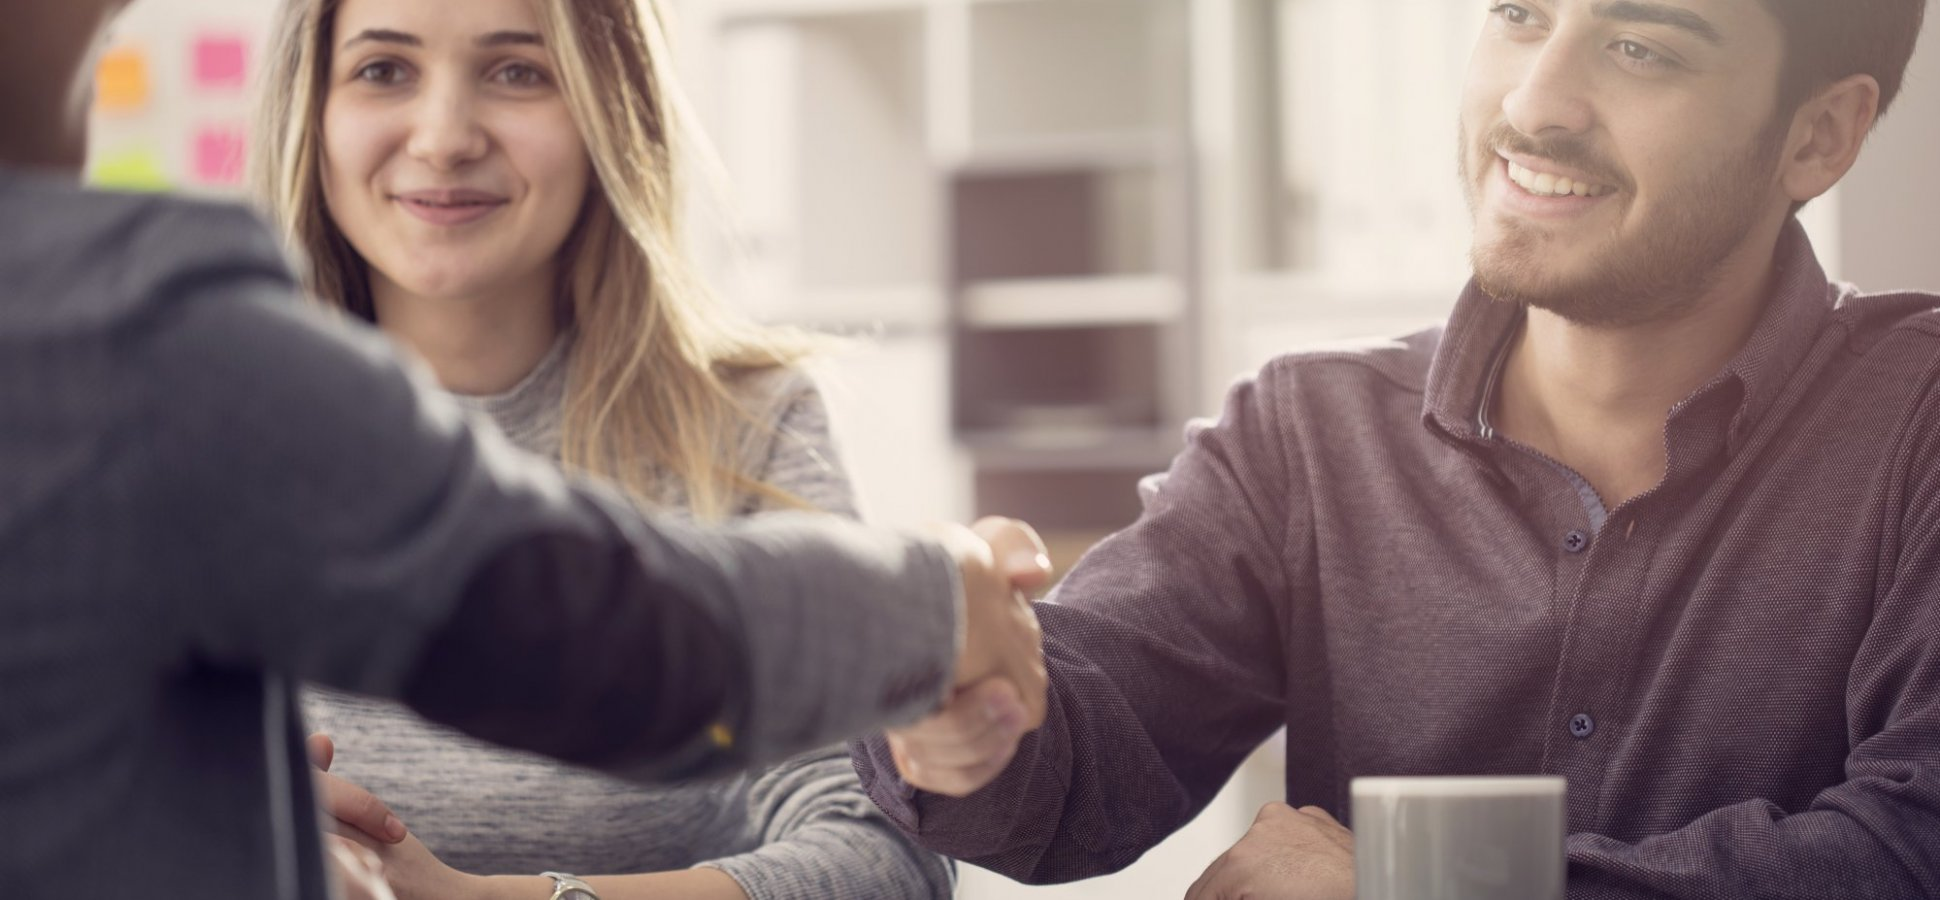 How to Build Rapport Fast With a Prospective Customer